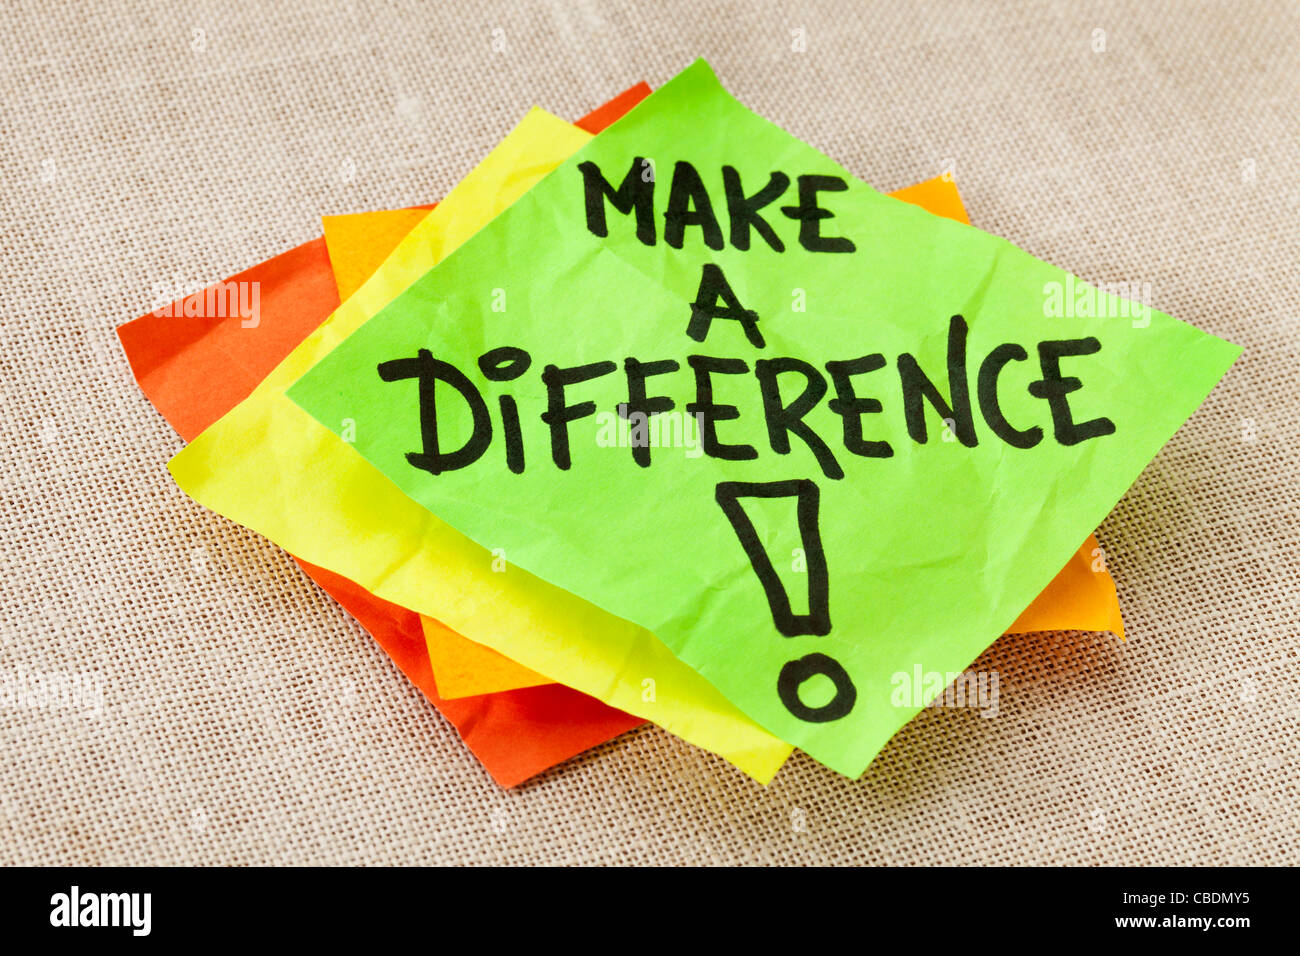 Make a difference -motivational reminder on green sticky note against canvas board - Stock Image